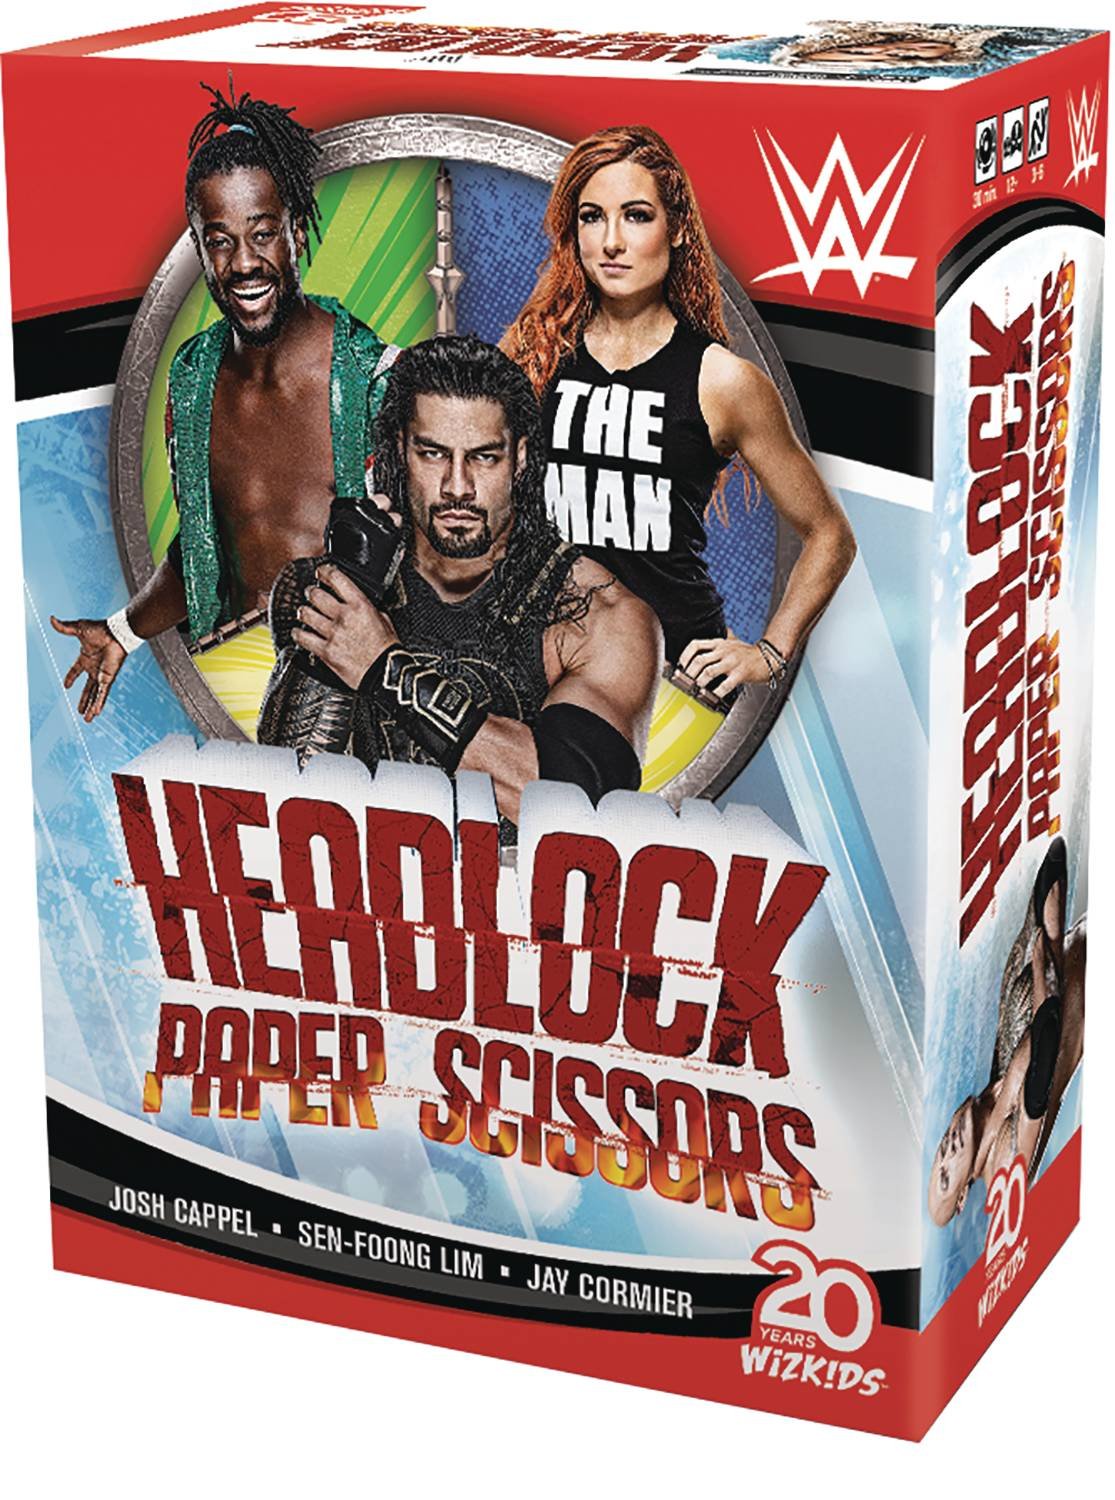 WWE HEADLOCK PAPER SCISSORS CARD GAME